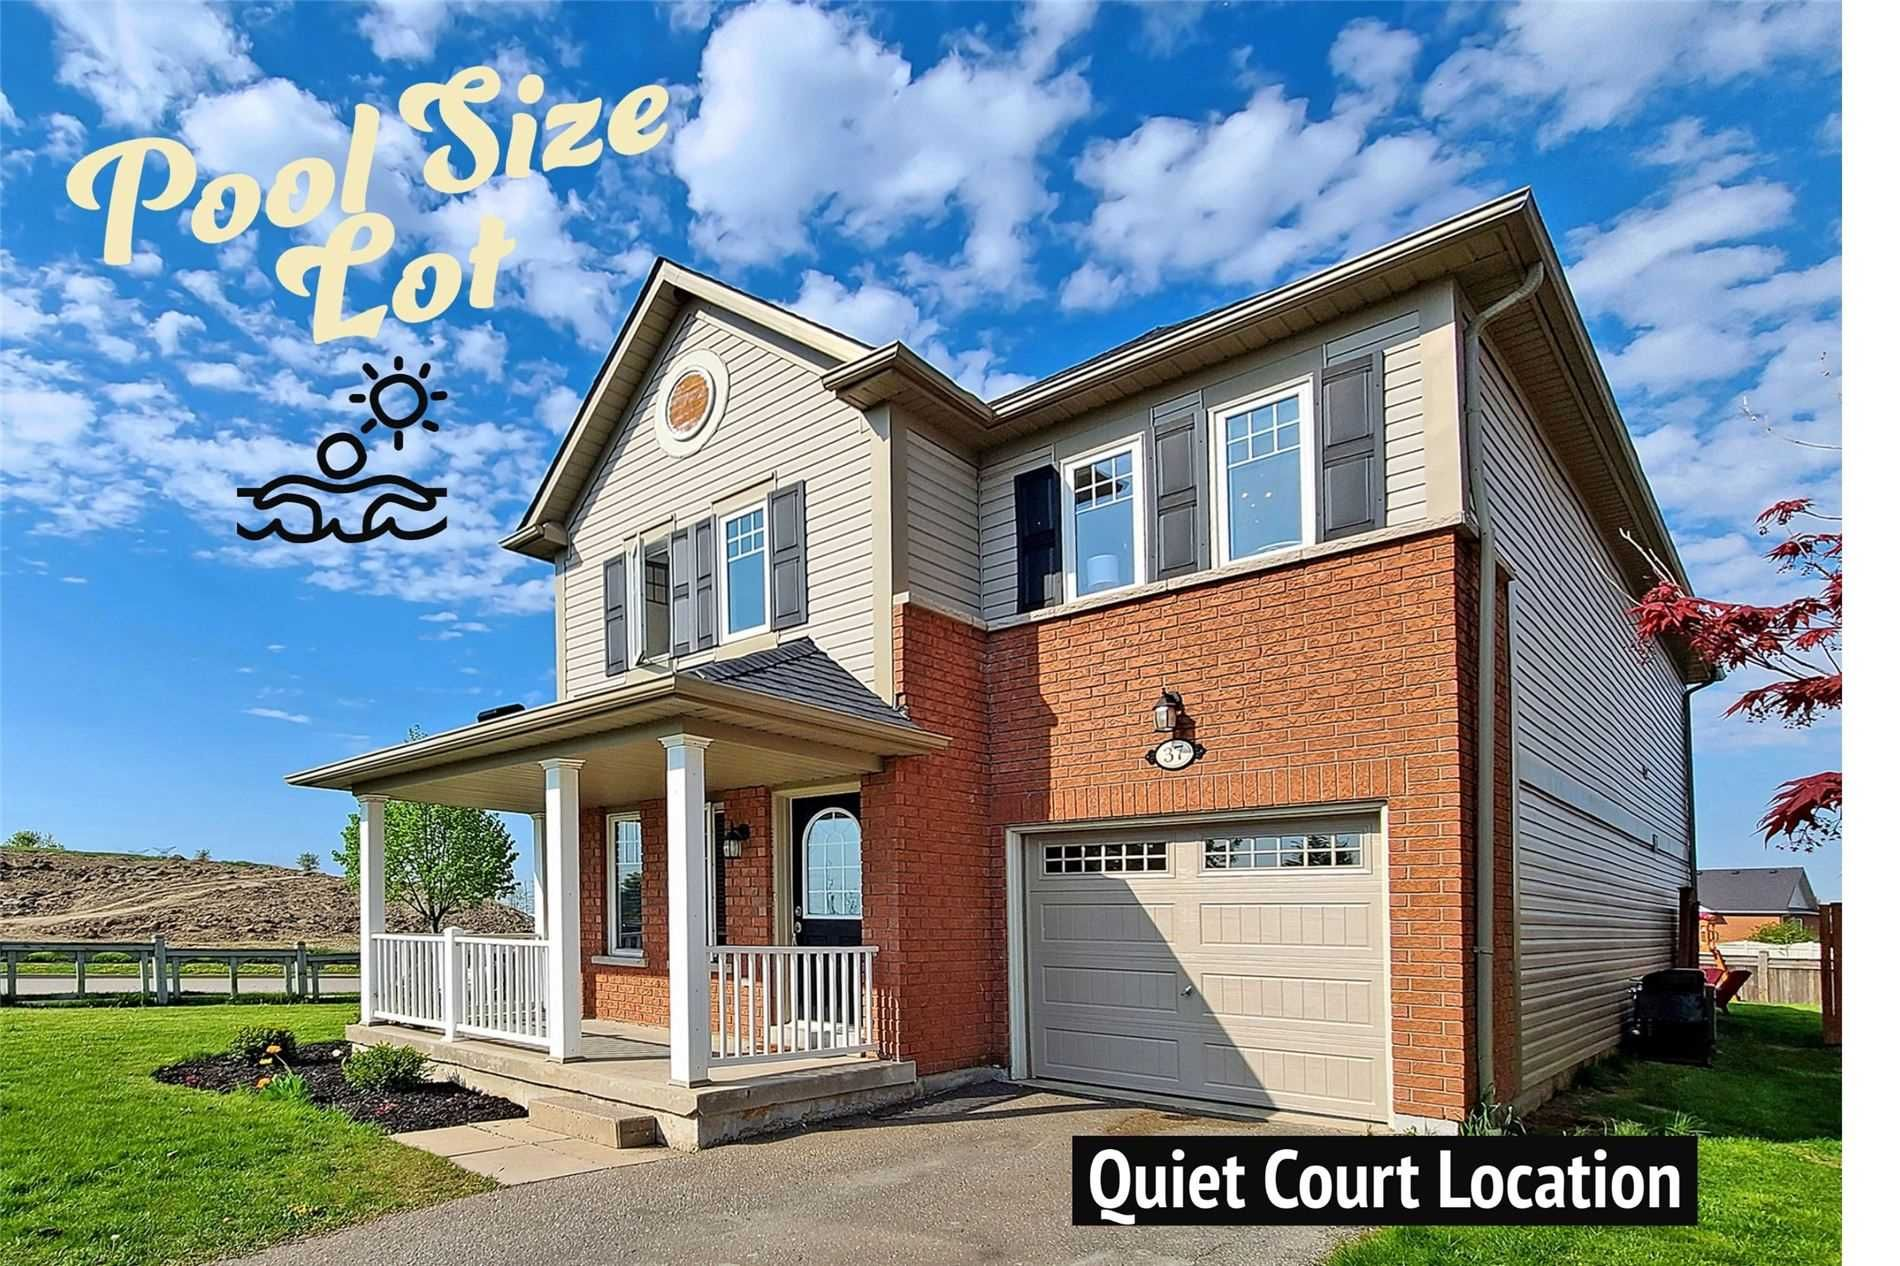 Main Photo: 37 Settler's Court in Whitby: Brooklin House (2-Storey) for sale : MLS®# E5244489